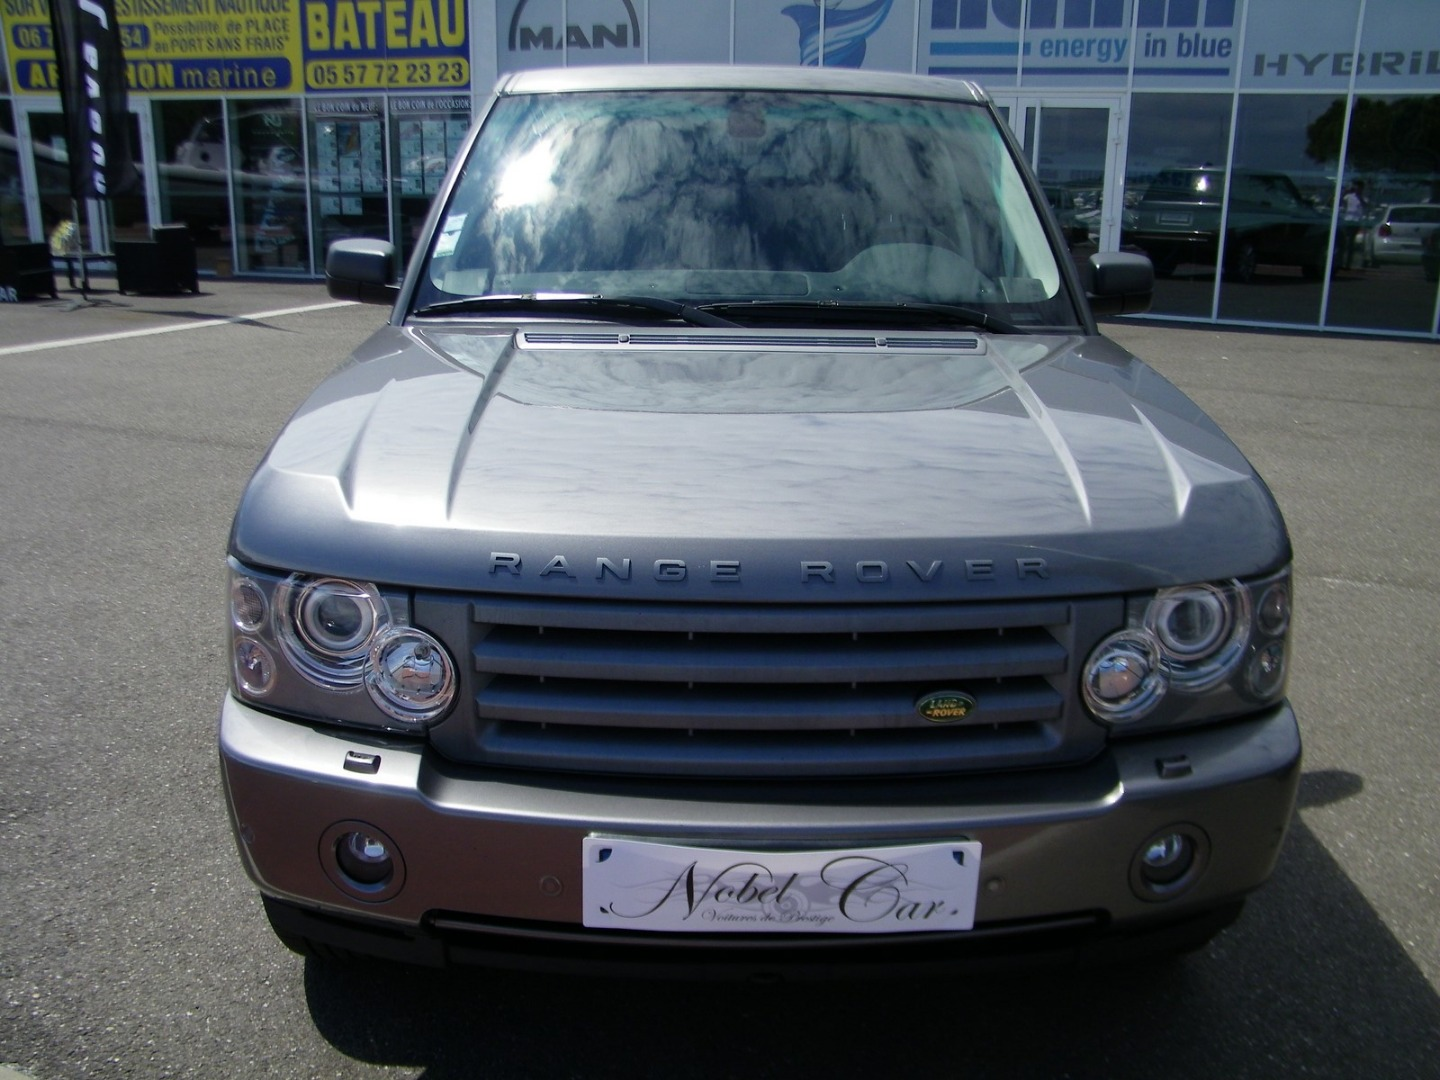 Land Rover TDV8 272 ch VOGUE BA du 07/2007 avec 138 000 km d'occasion Nobel Car 33